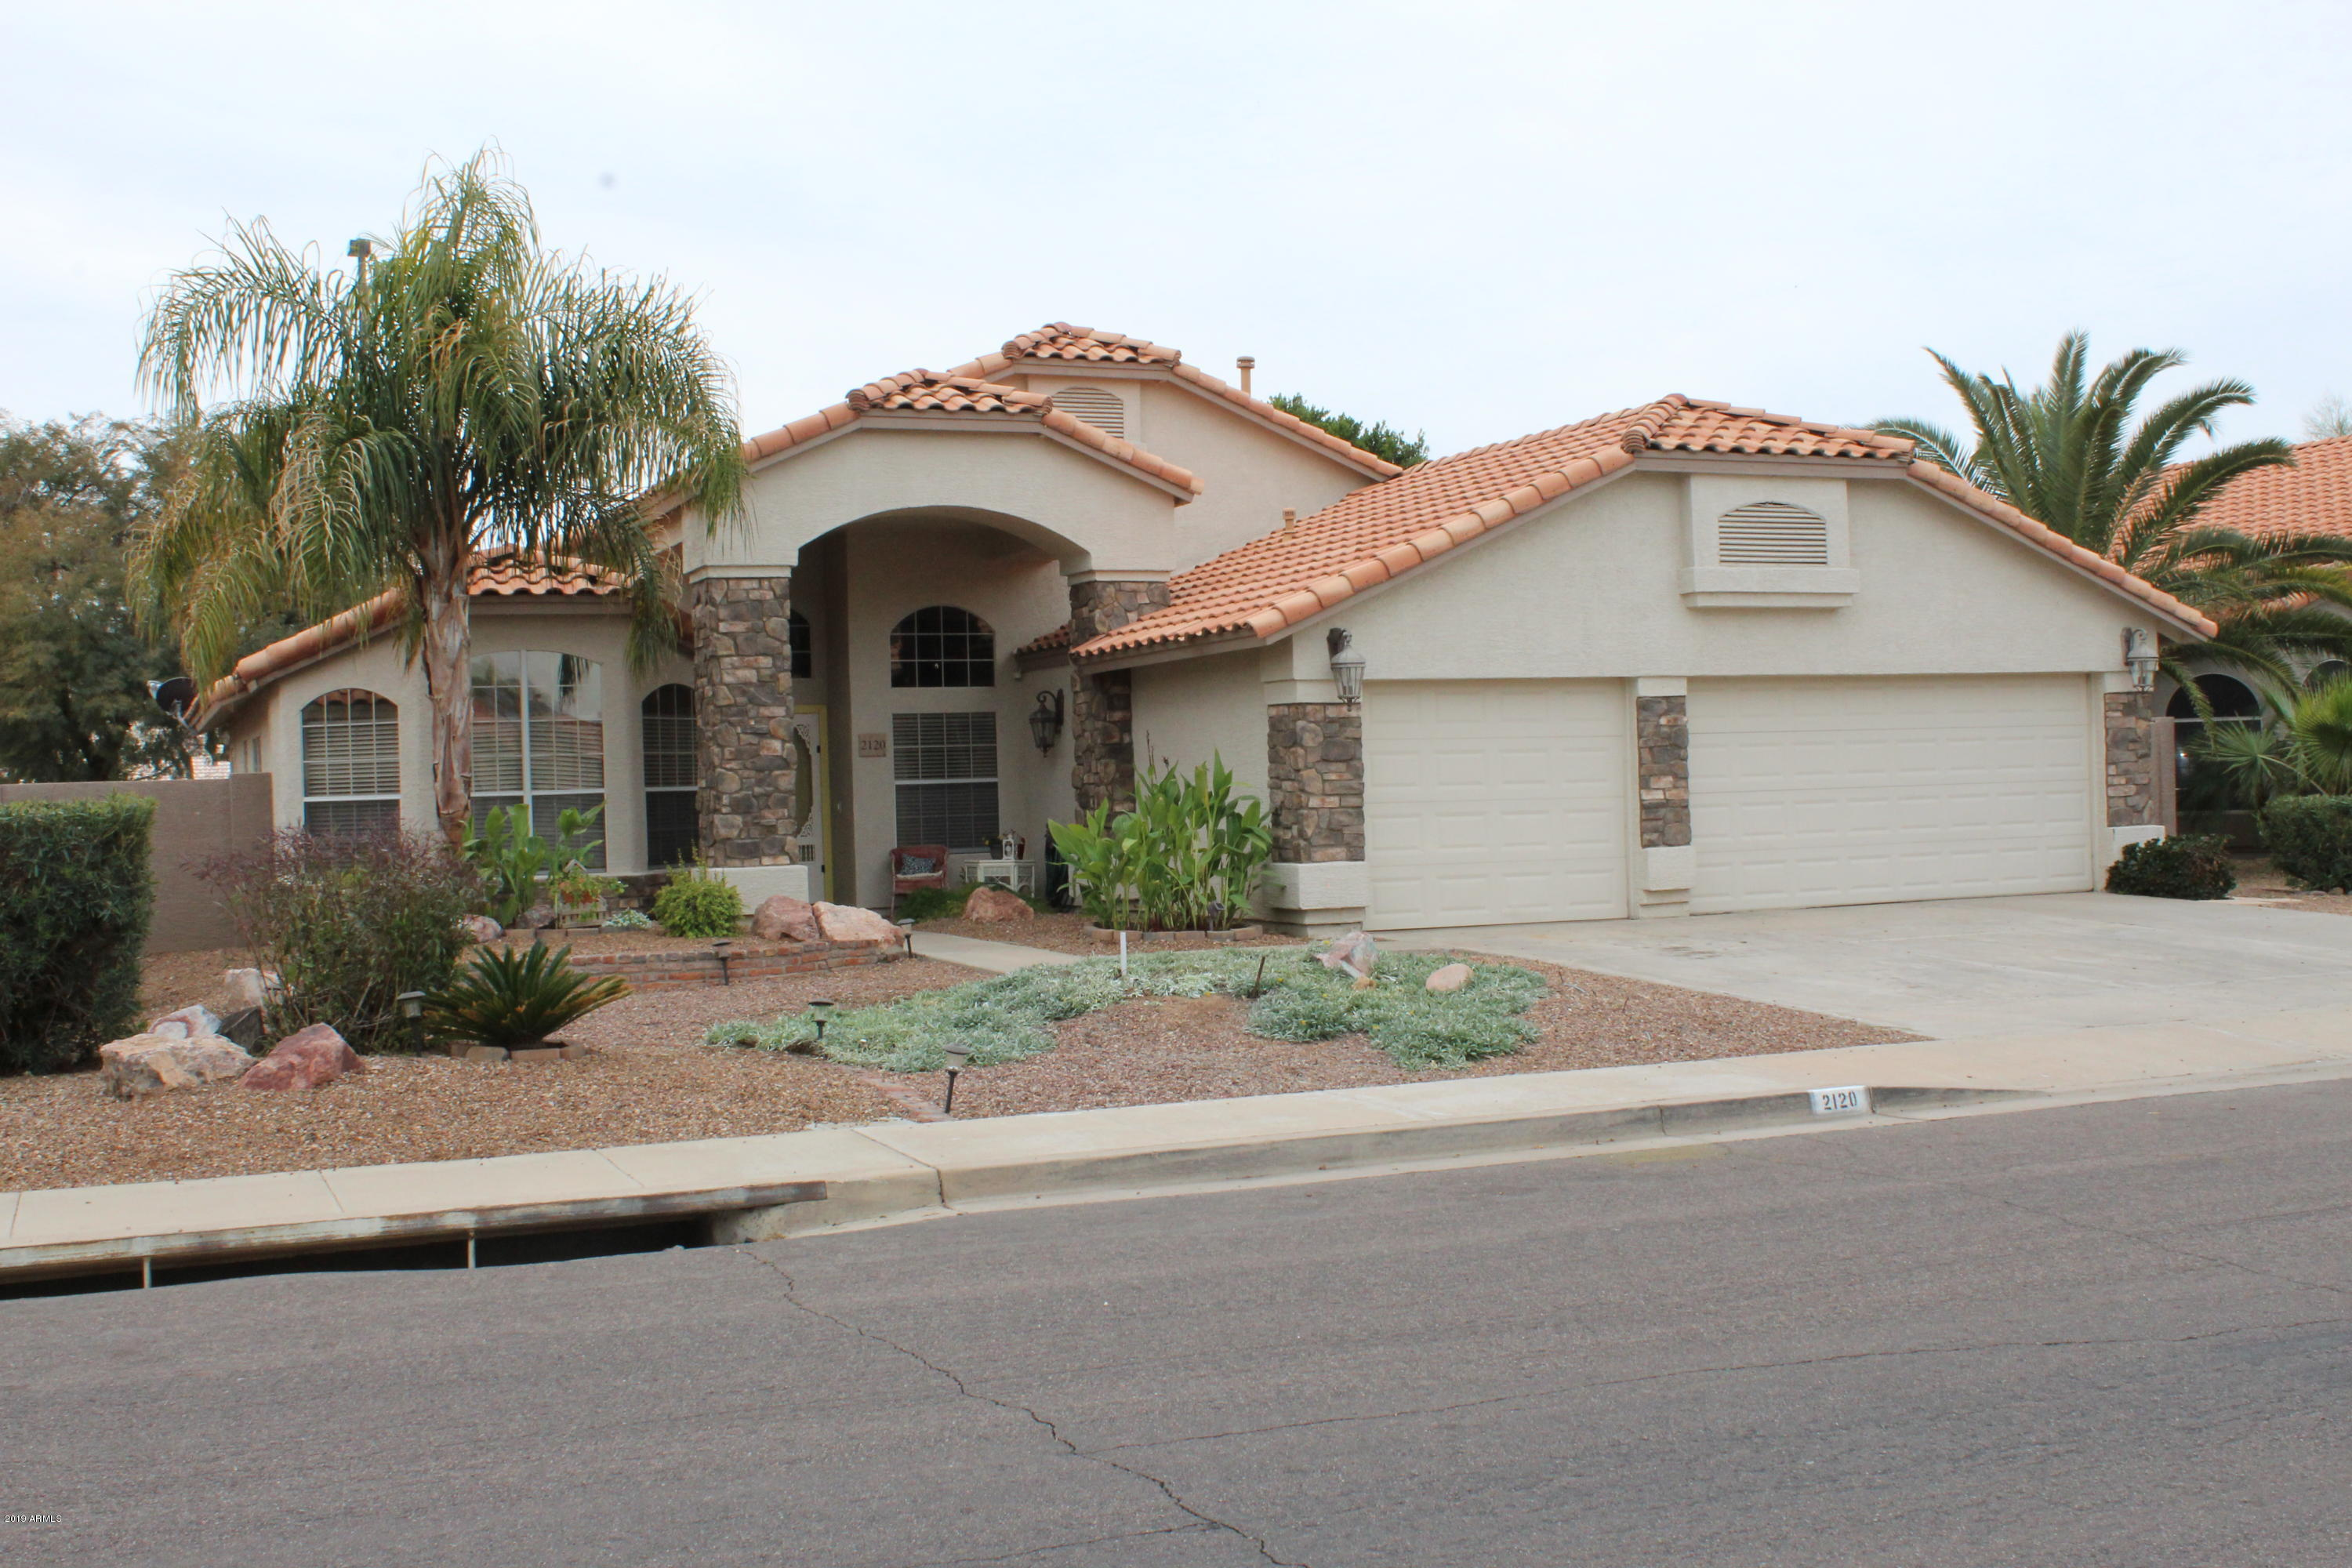 Photo of 2120 S RAVEN Circle, Mesa, AZ 85209